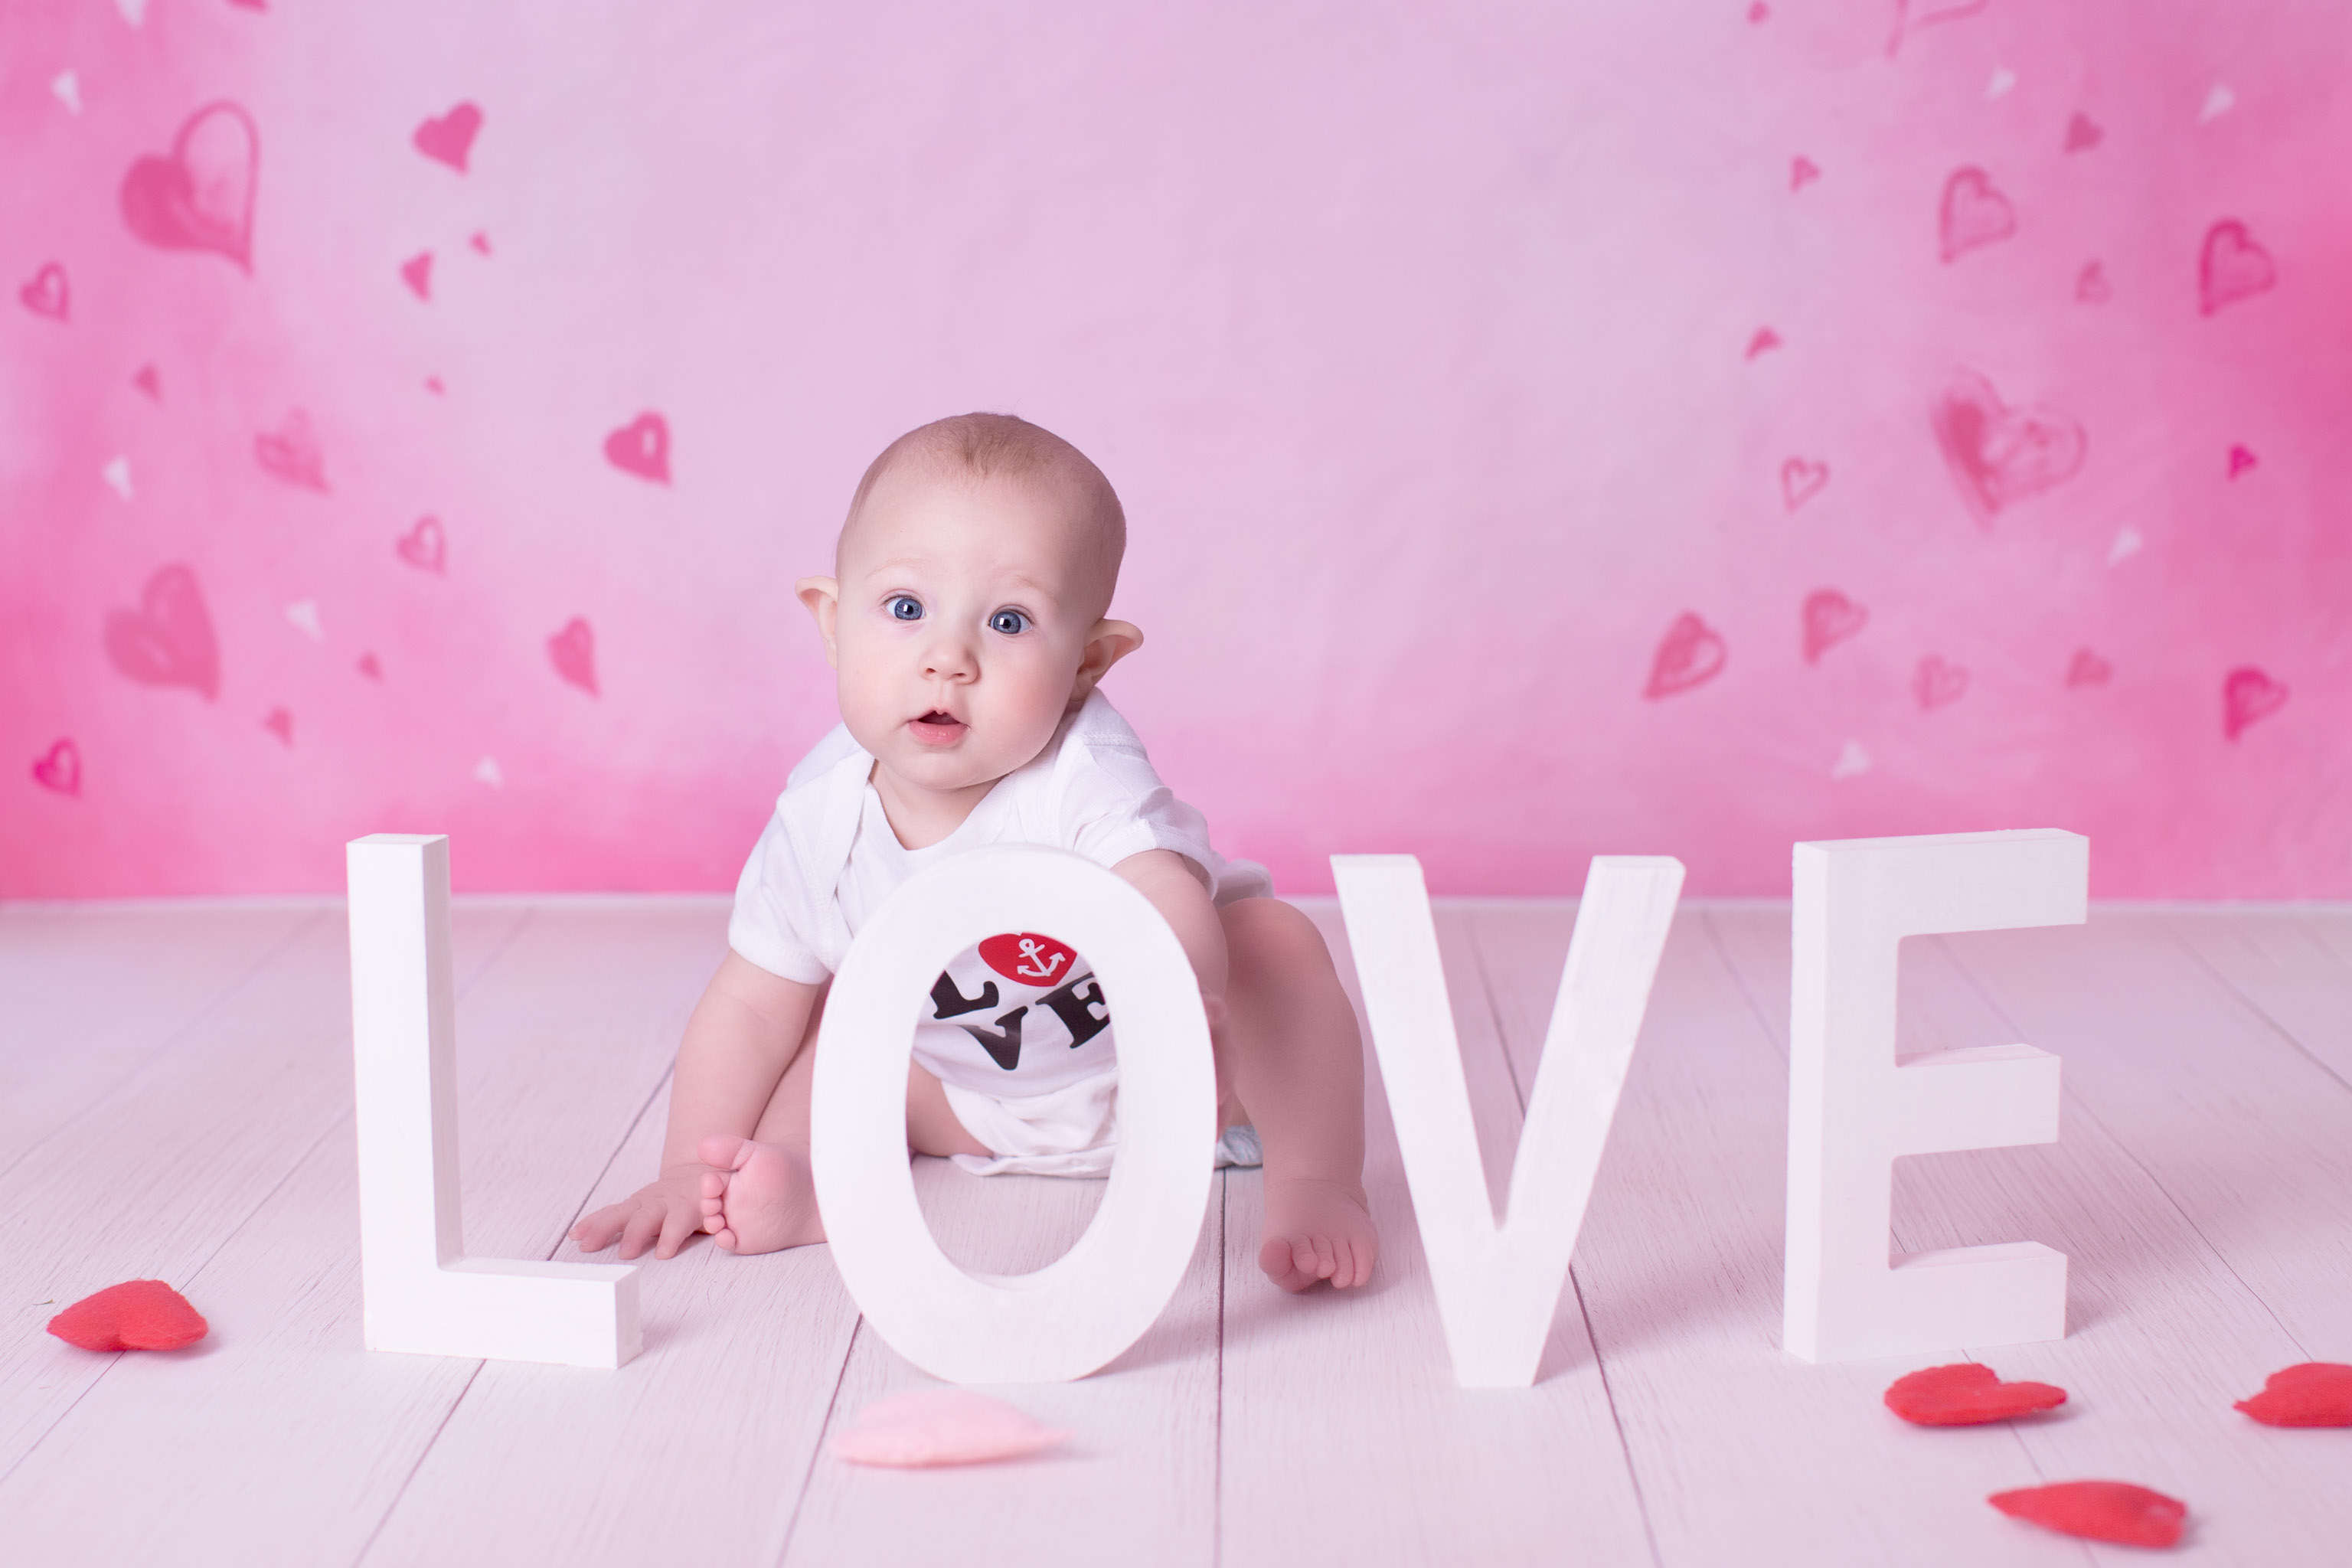 Image of baby peaking out from large letters LOVE